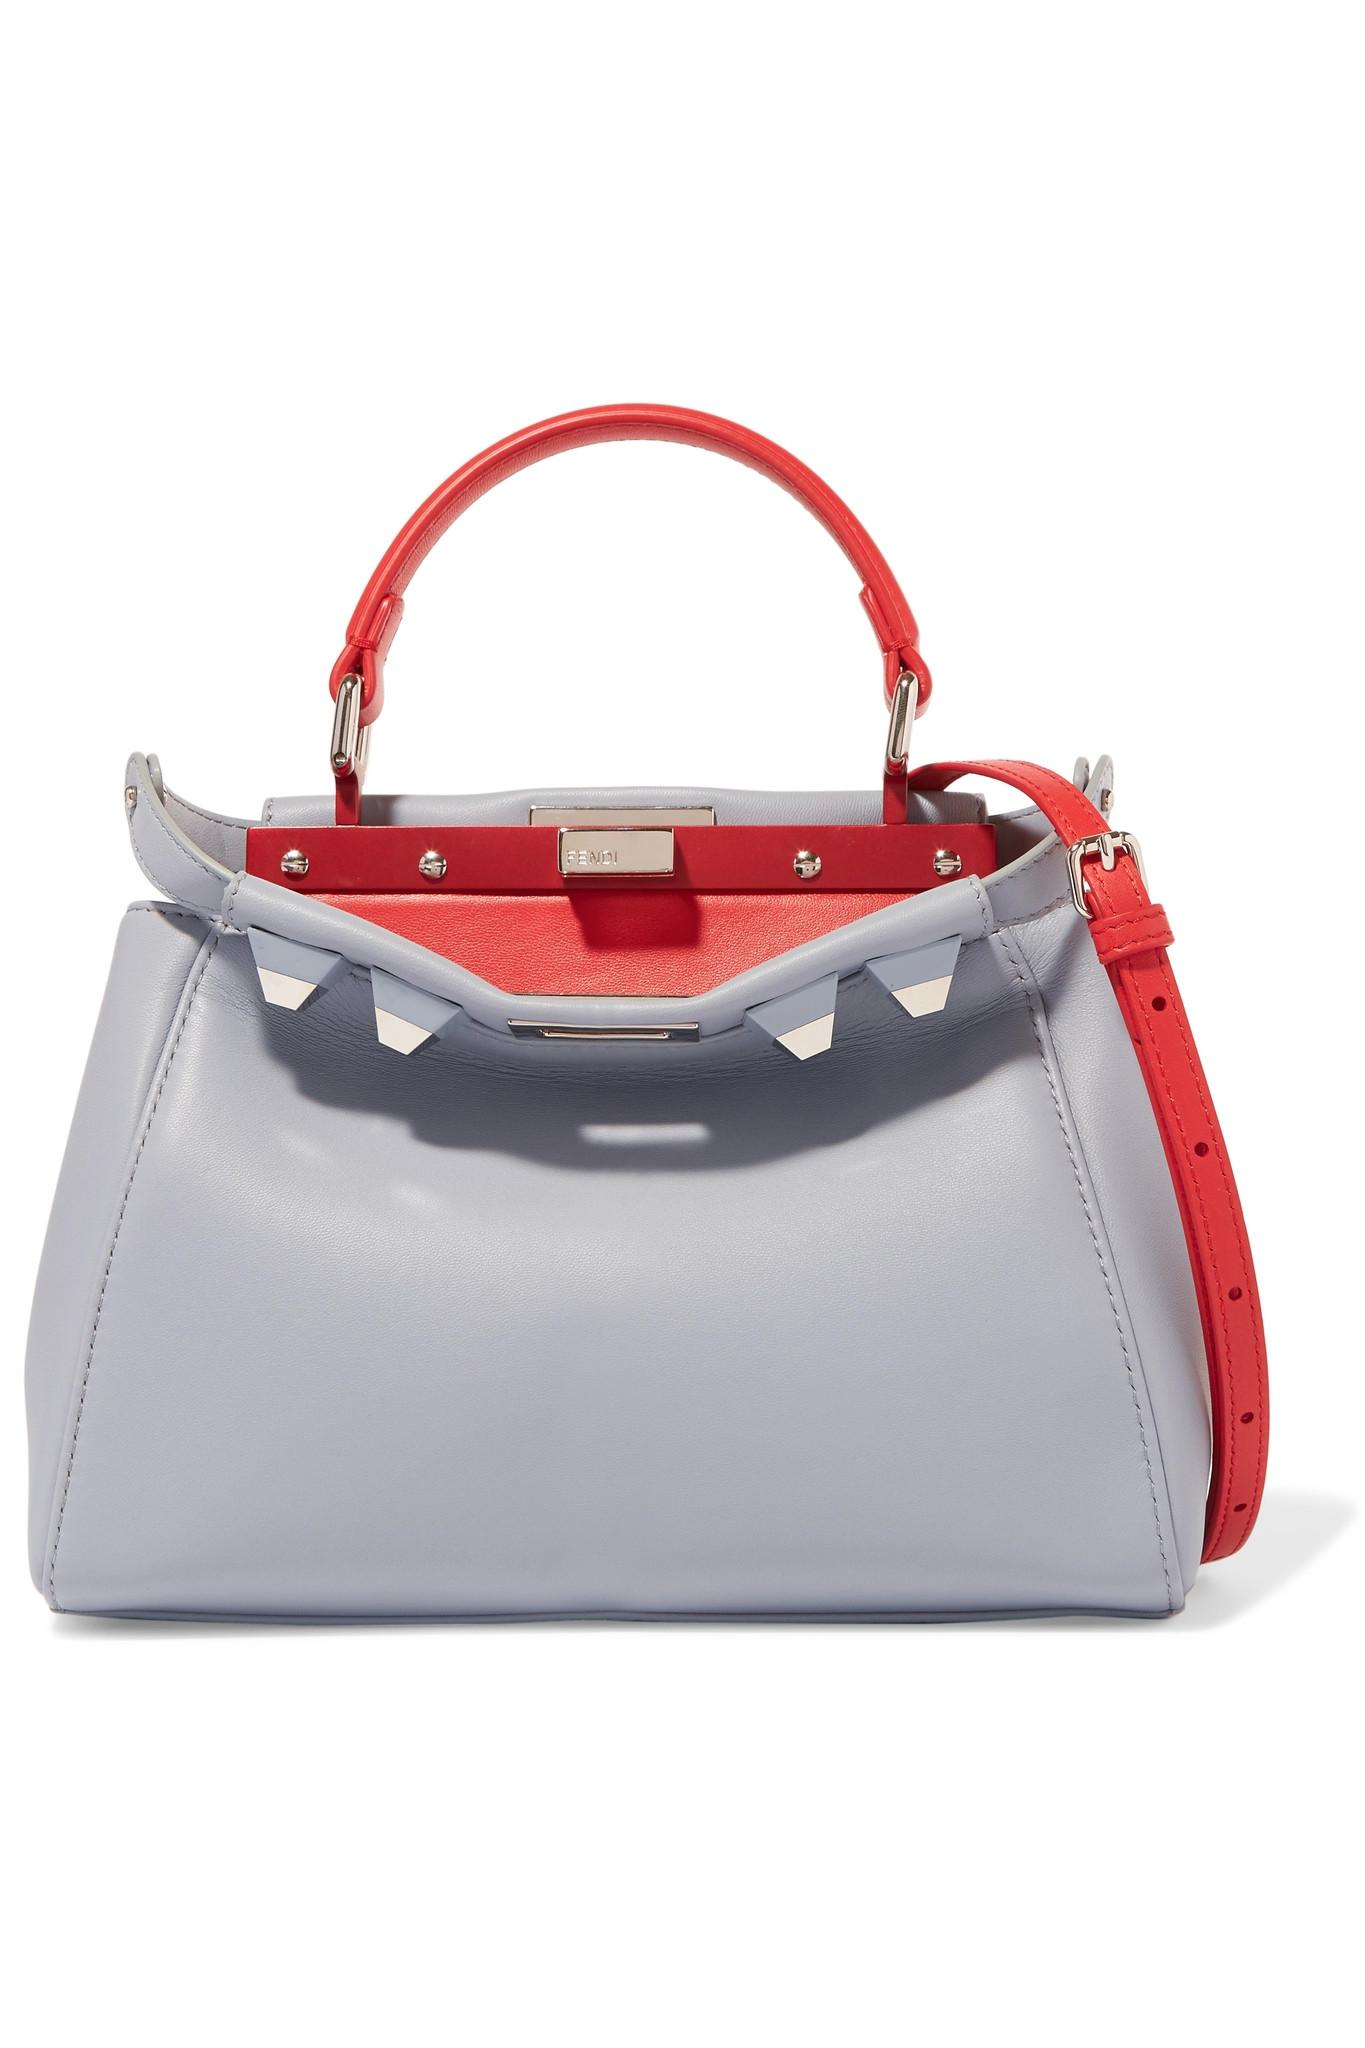 9c910285e5d6 Gallery. Previously sold at  NET-A-PORTER · Women s Fendi Peekaboo ...